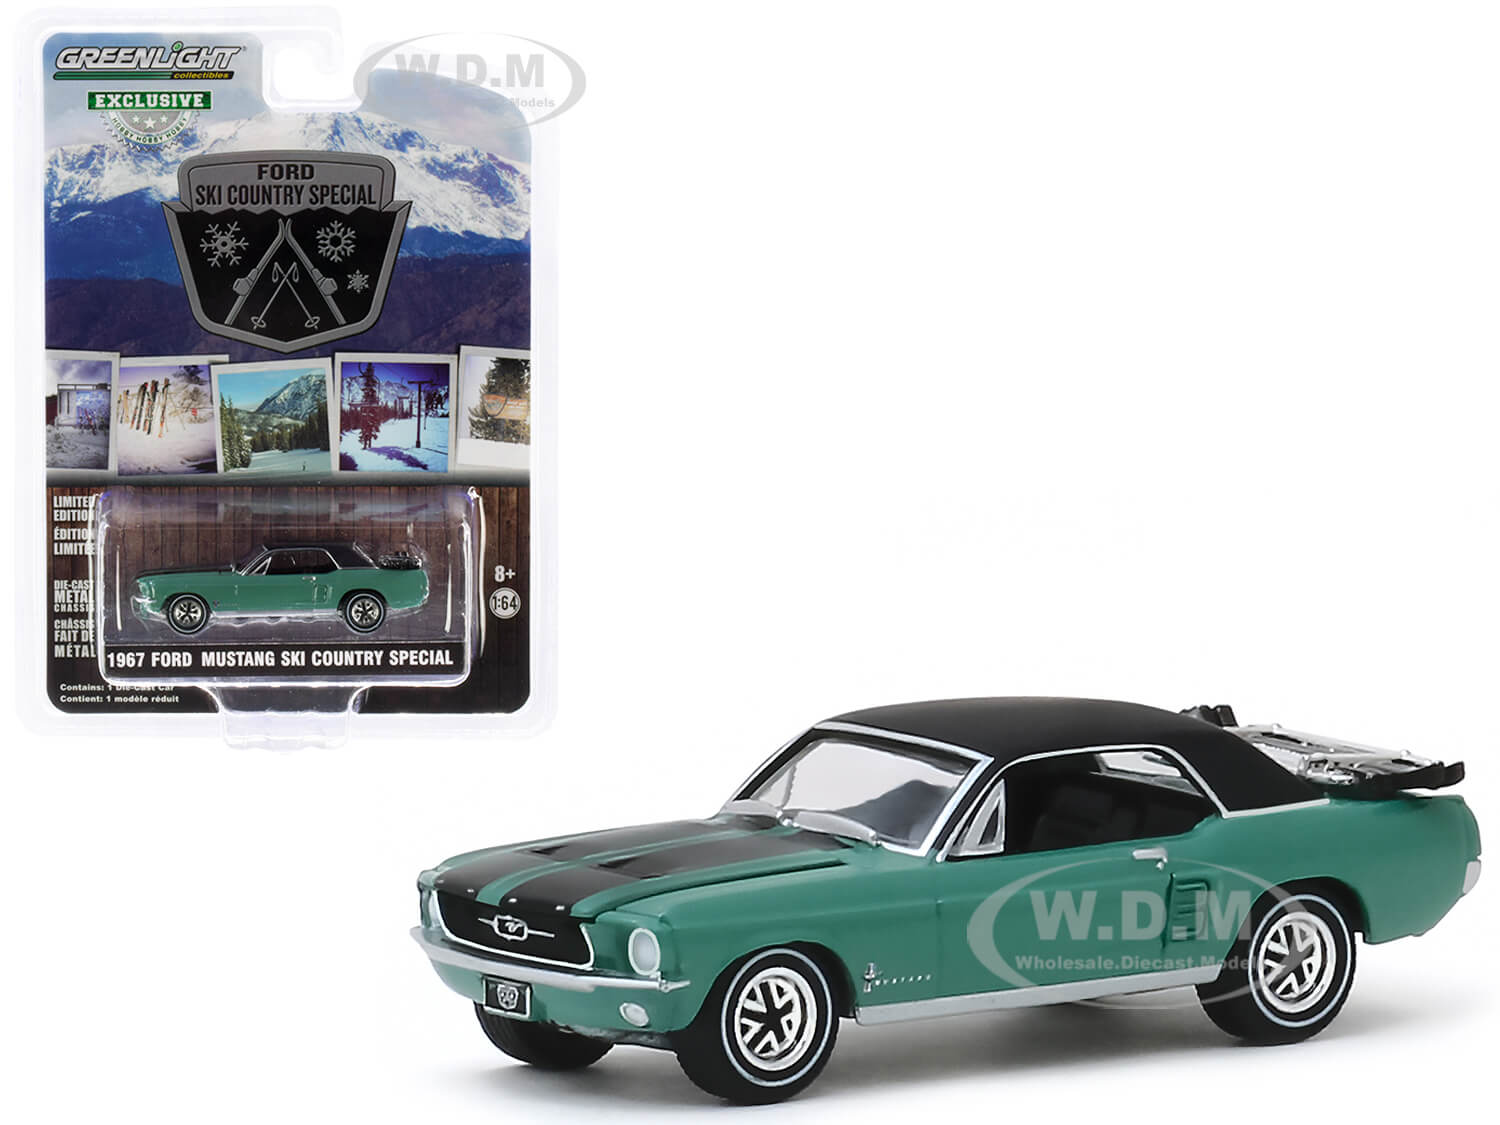 1967 Ford Mustang Coupe Loveland Green Metallic with Black Stripes and Black Top and a Pair of Skis